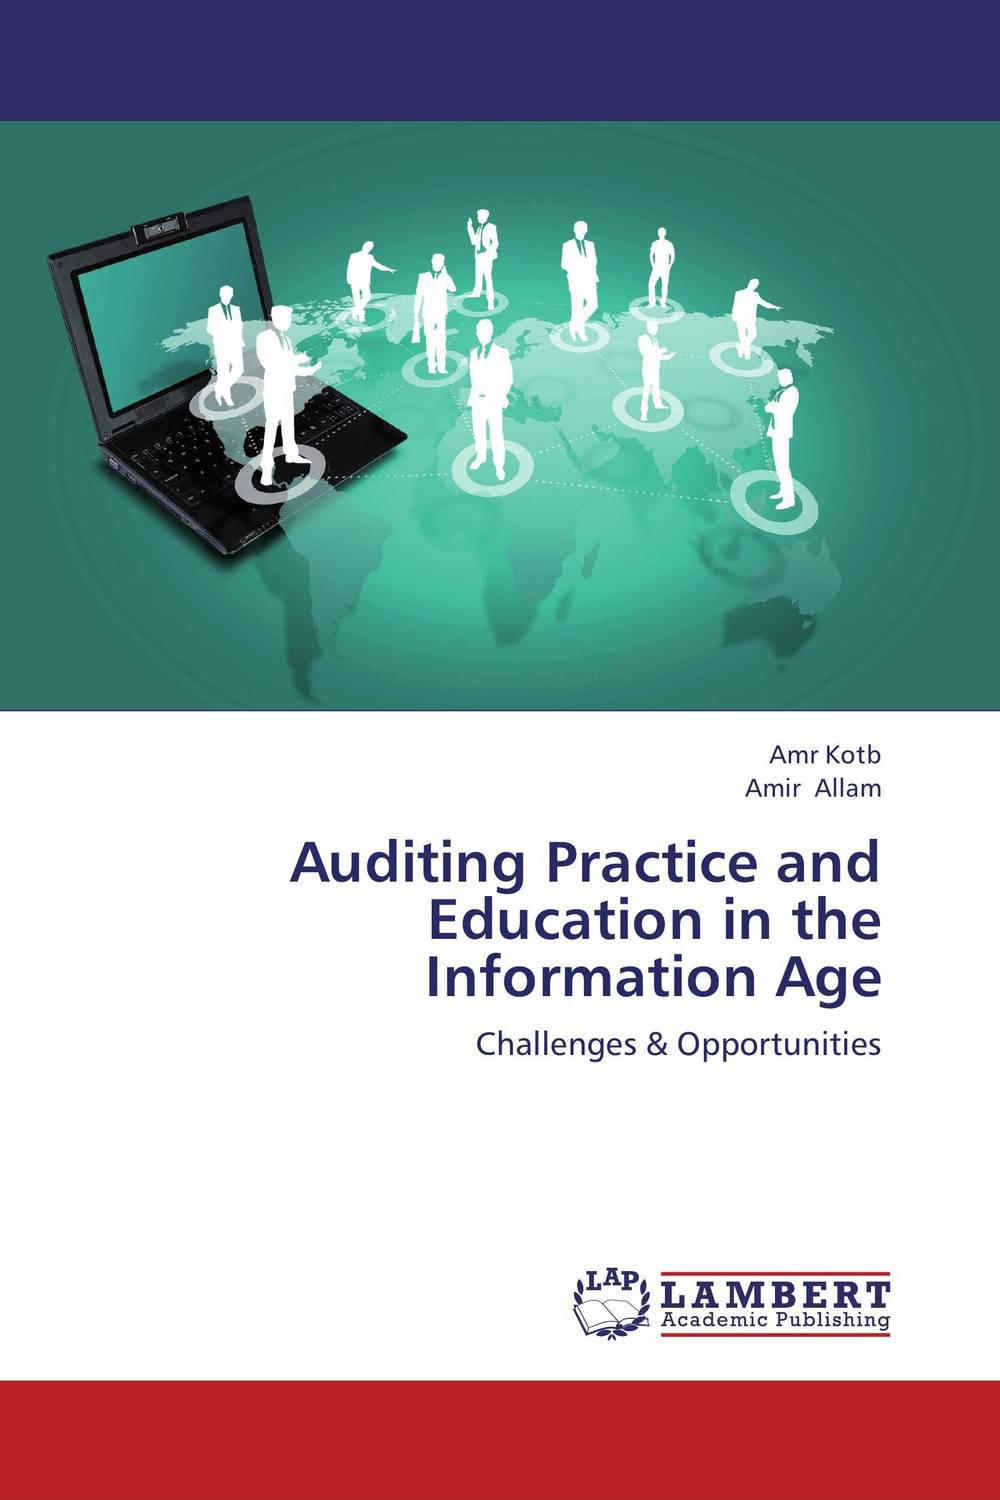 Auditing Practice and Education in the Information Age richard cascarino e auditor s guide to it auditing